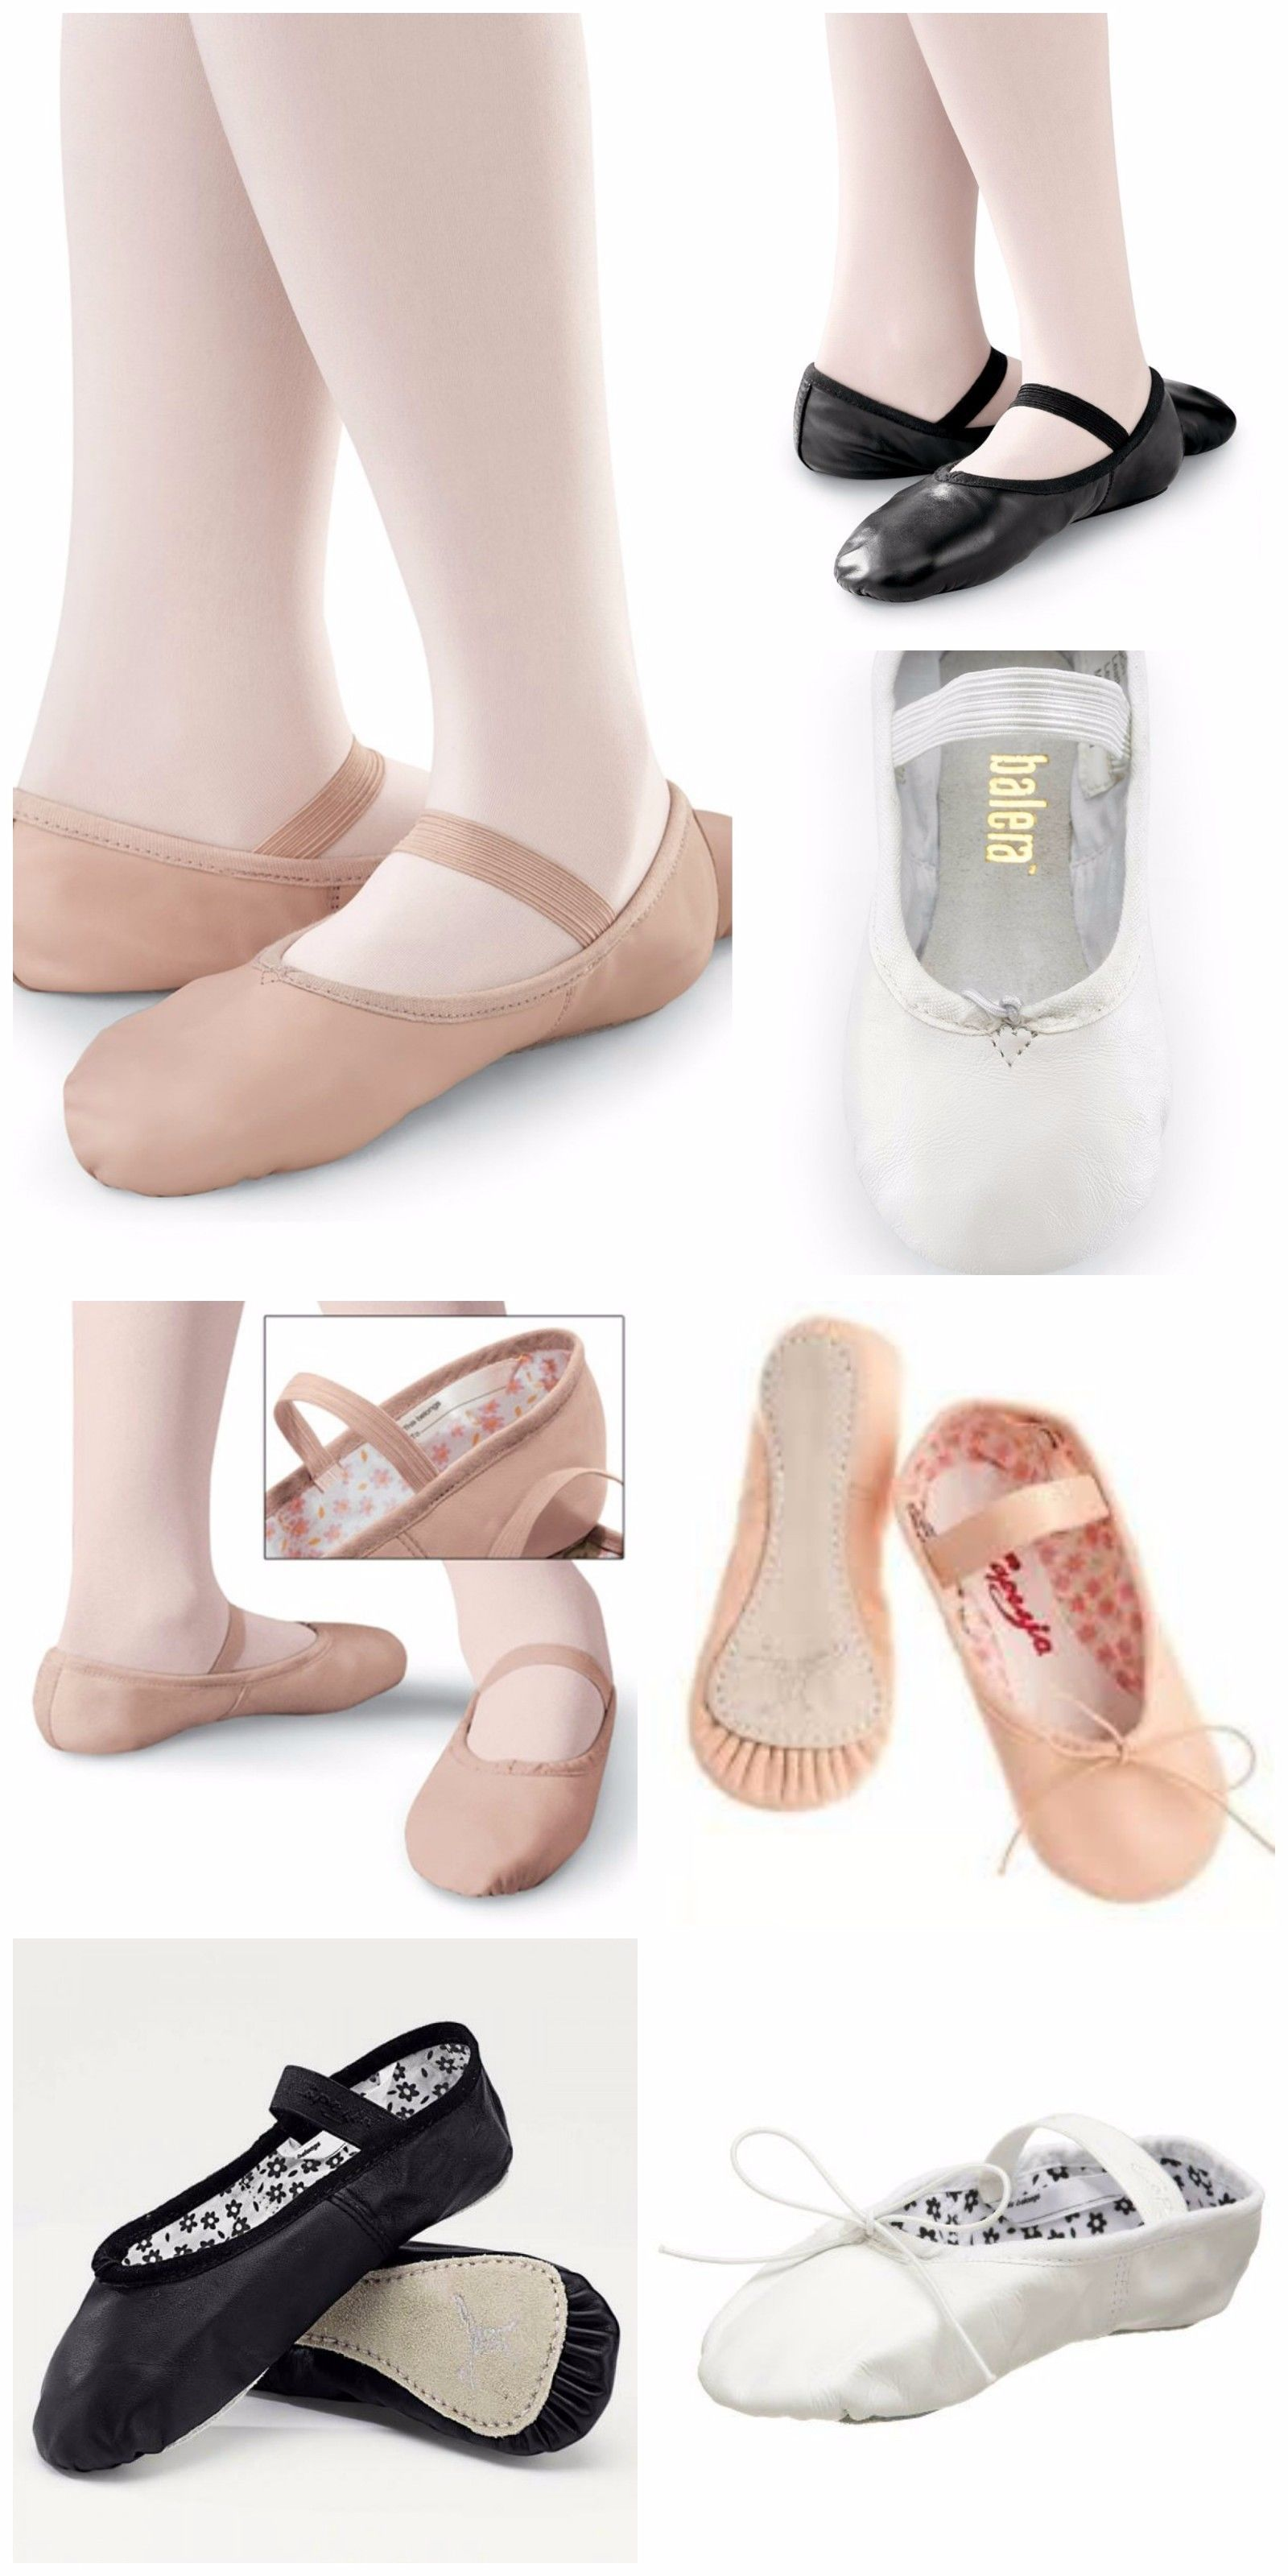 Pin On Full Sole Ballet Shoes